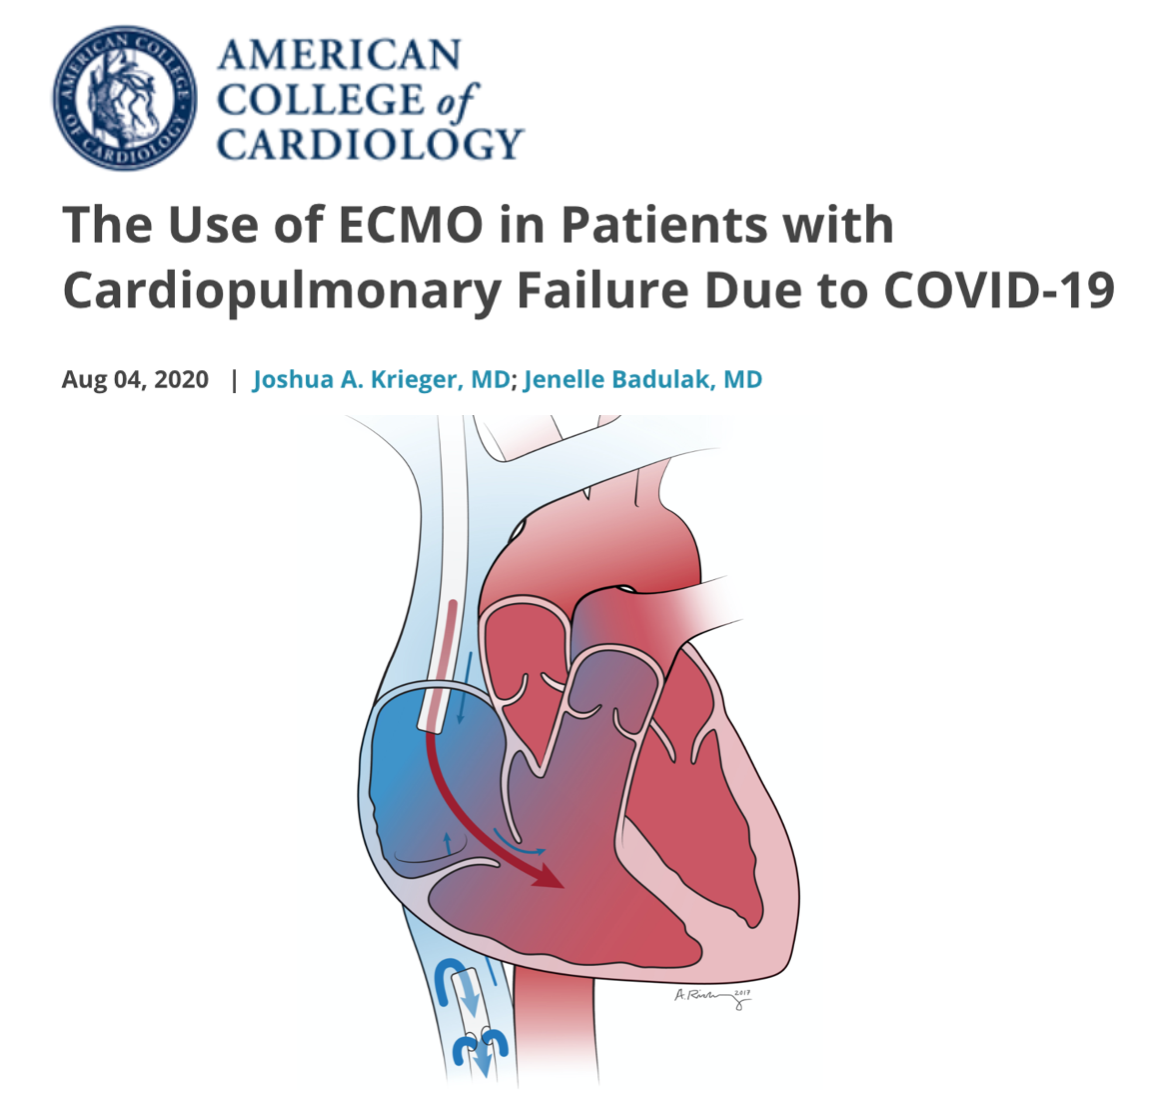 ECMO in cardio-pulmonary failure due to #COVID19, expert analysis: #ECLS can be successfully supported implemented,  but judicious pt selection mandatory to en able maximal benefit/optimized outcomes, considering limited resources availability @ACCinTouch https://bit.ly/3kpBnuU pic.twitter.com/EXiqAxdzbT